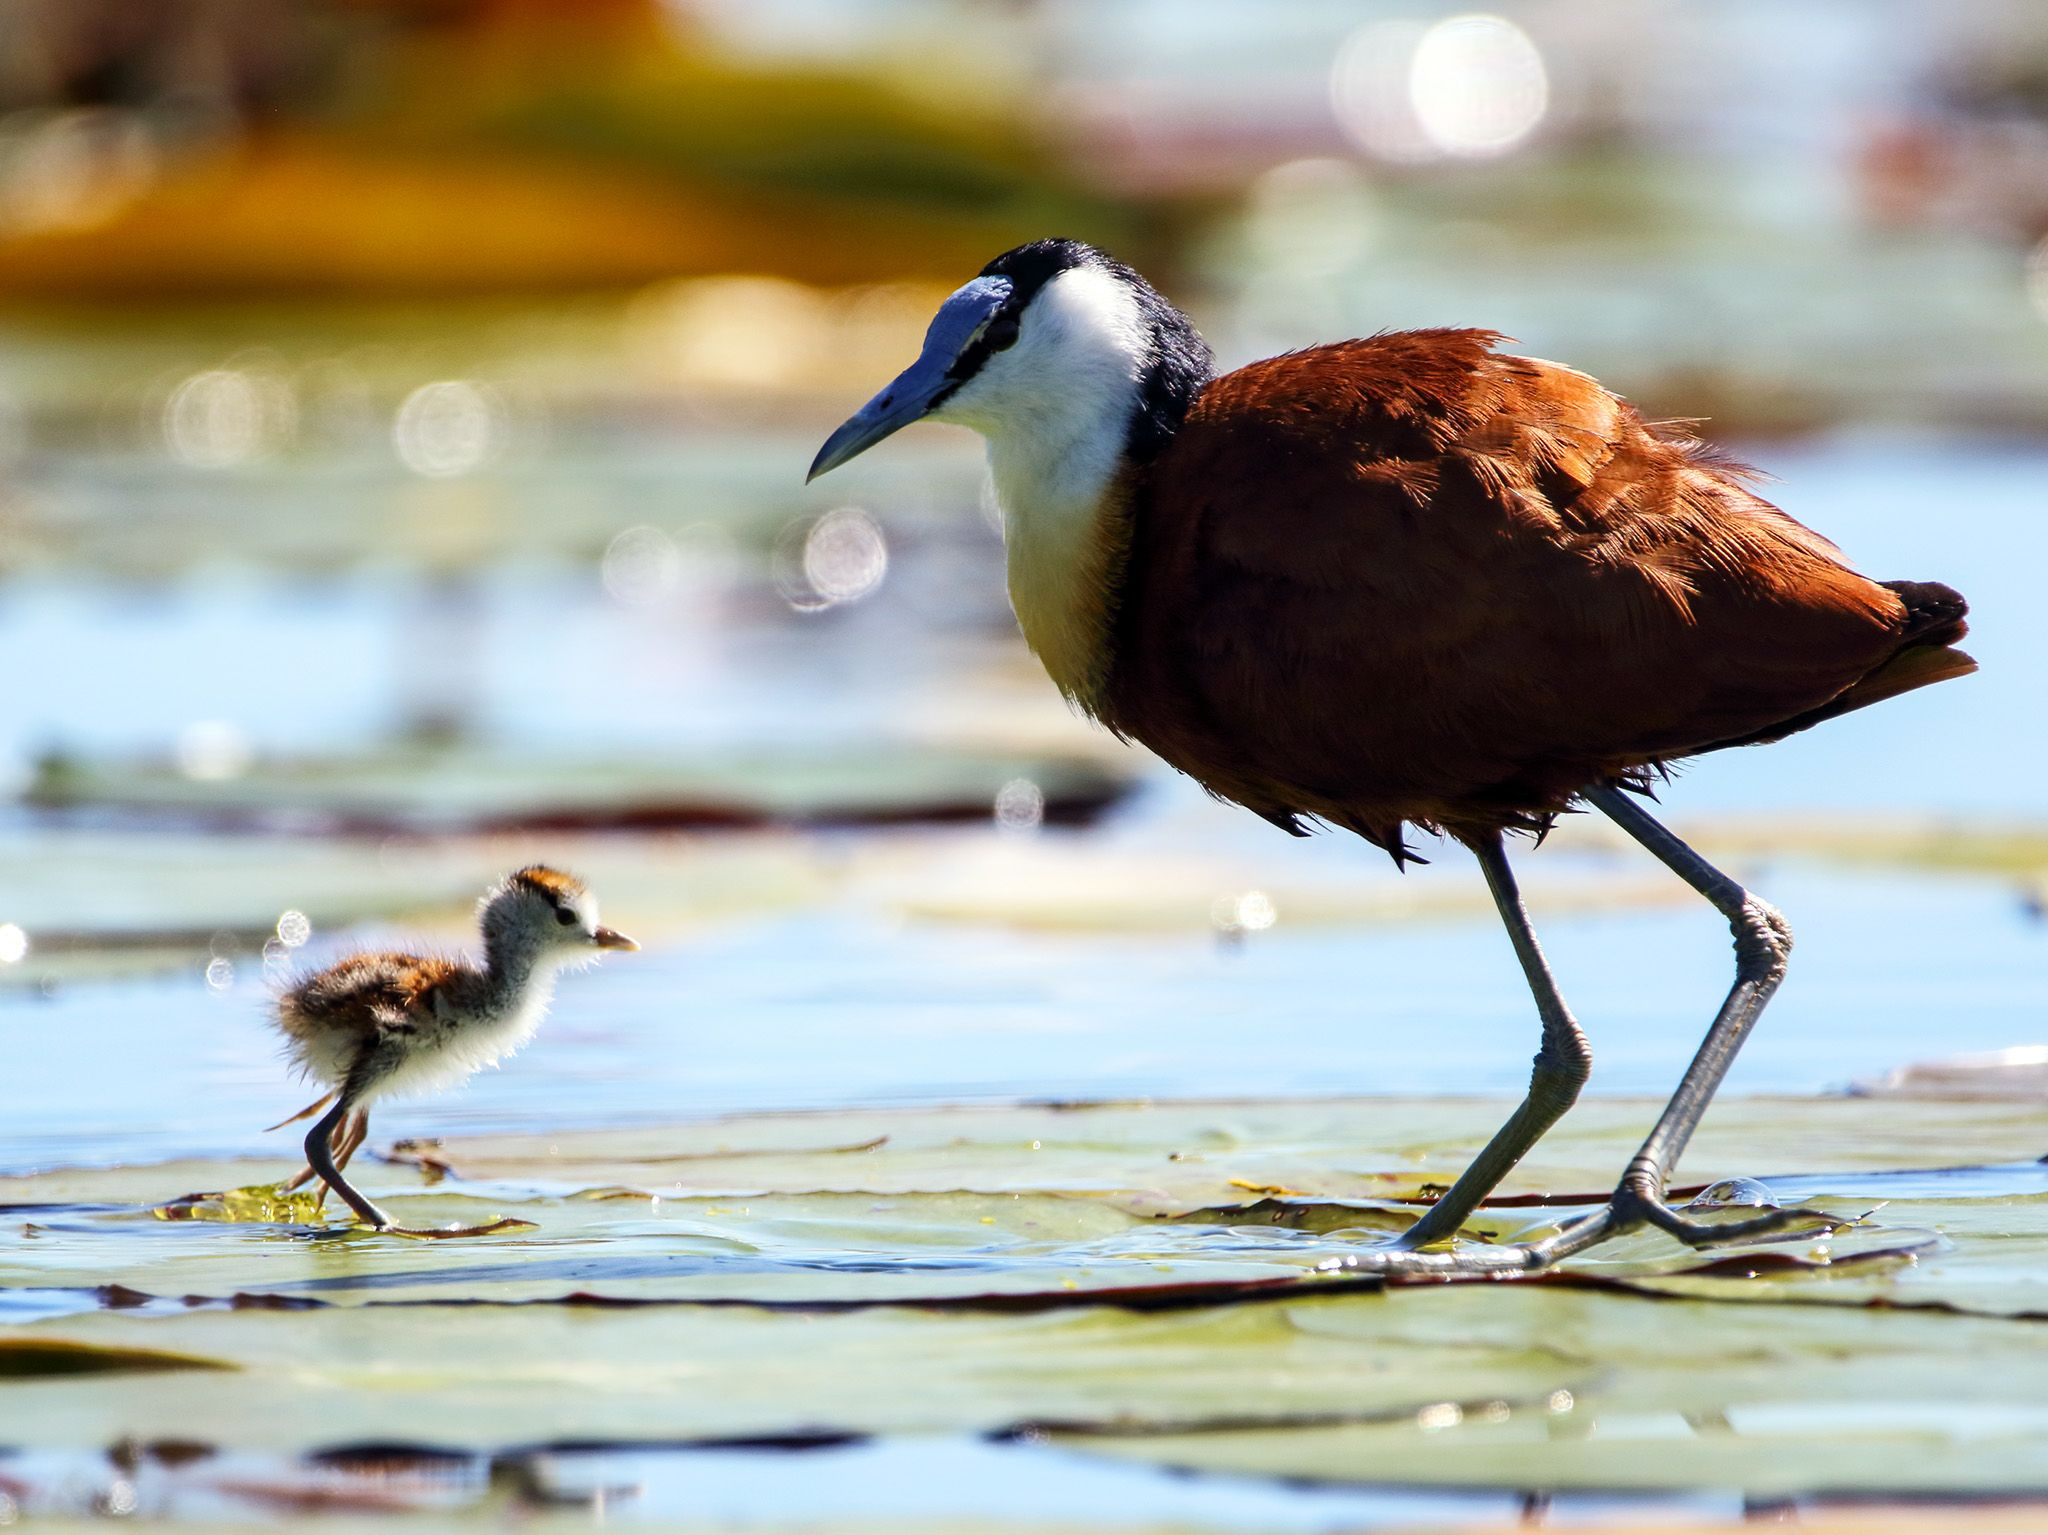 Botswana:  A male Jacana watches as its young chick crosses the mat of Lilly pads that cover one... [Photo of the day - November 2018]